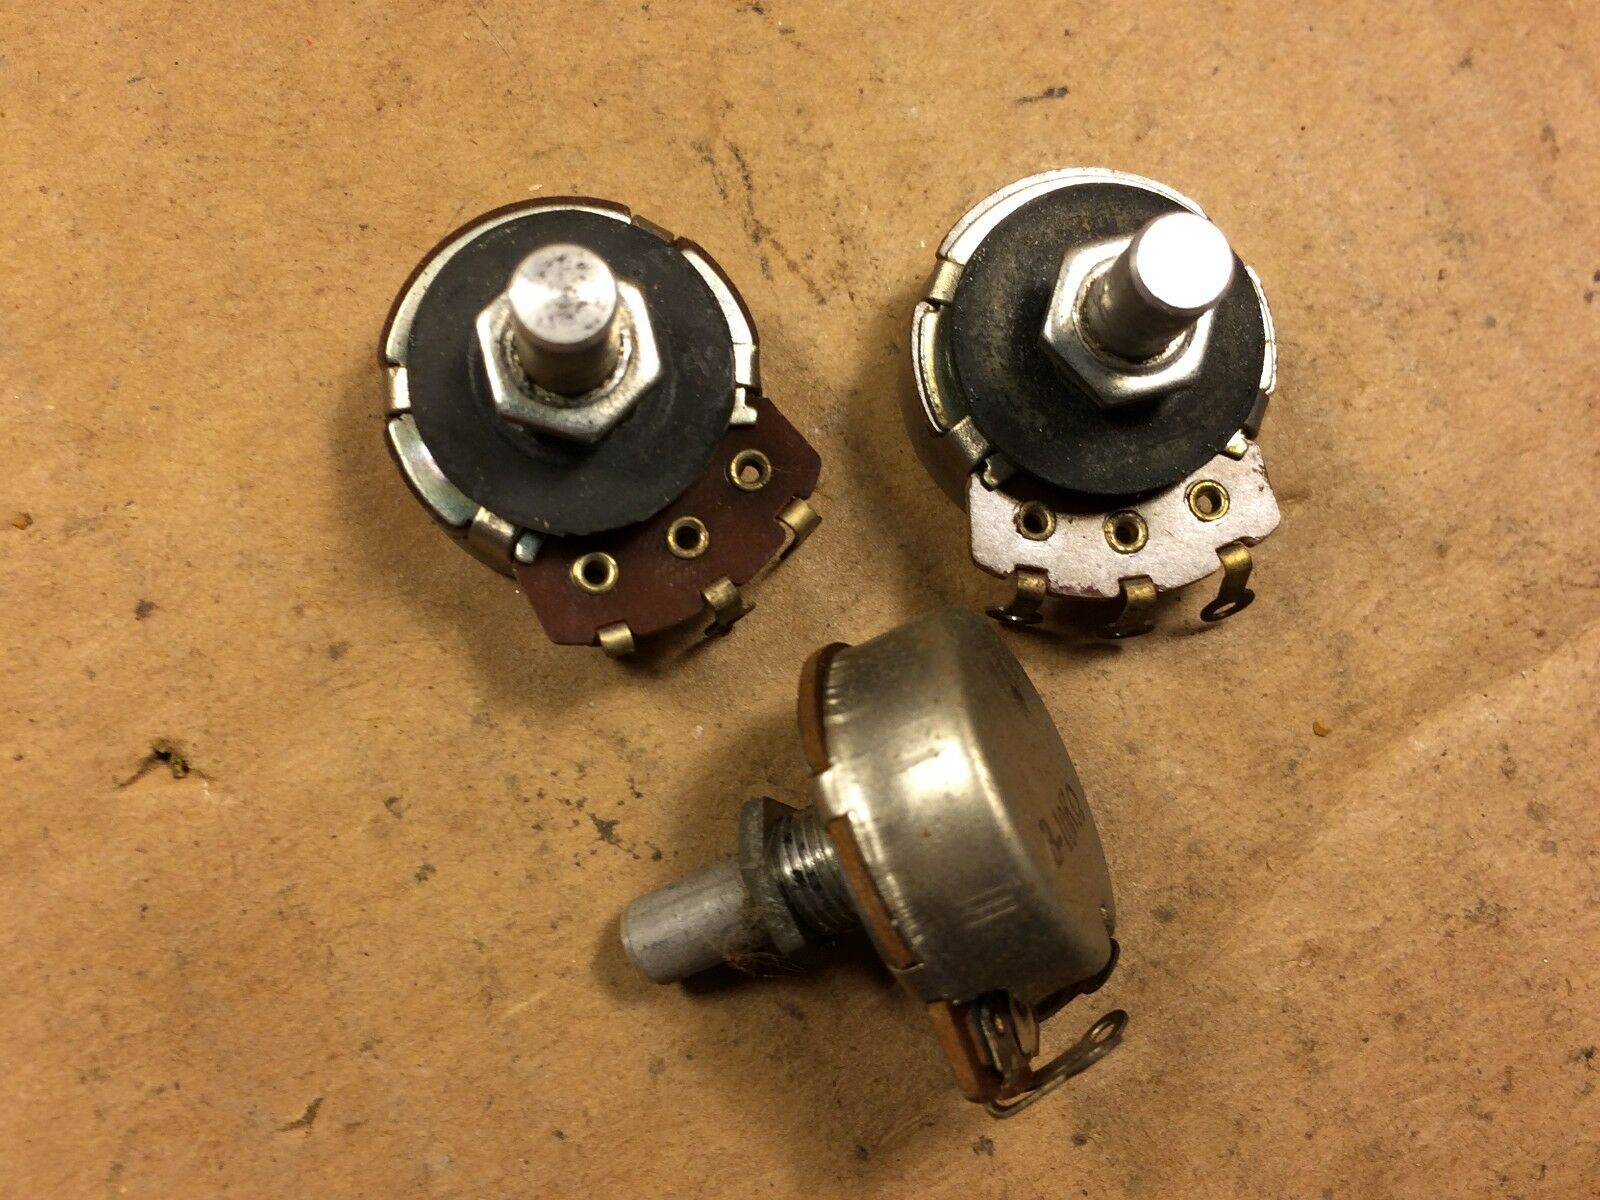 Three NOS Vintage 10k ohm Guitar Potentiometers 1959 Linear Taper TESTED pots